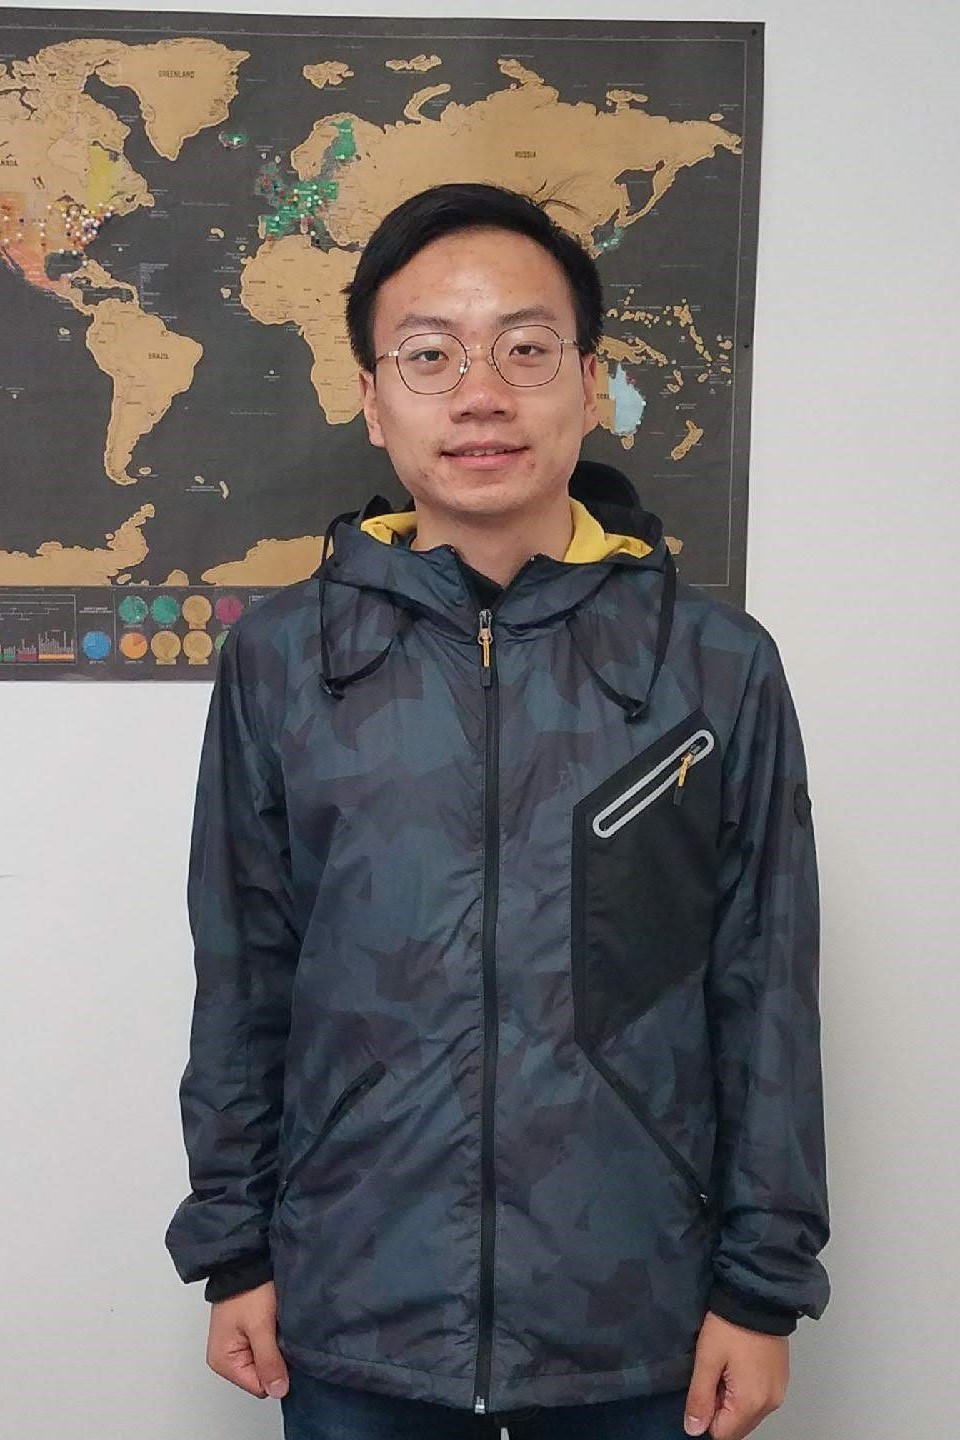 Mr. Guanyu Lu joined the Mechanical Engineering Department at Vanderbilt University and the Caldwell Lab in Fall 2018. He comes to us from Xi'an Jiaotong University in China, where he majored in Energy and Power Engineering.